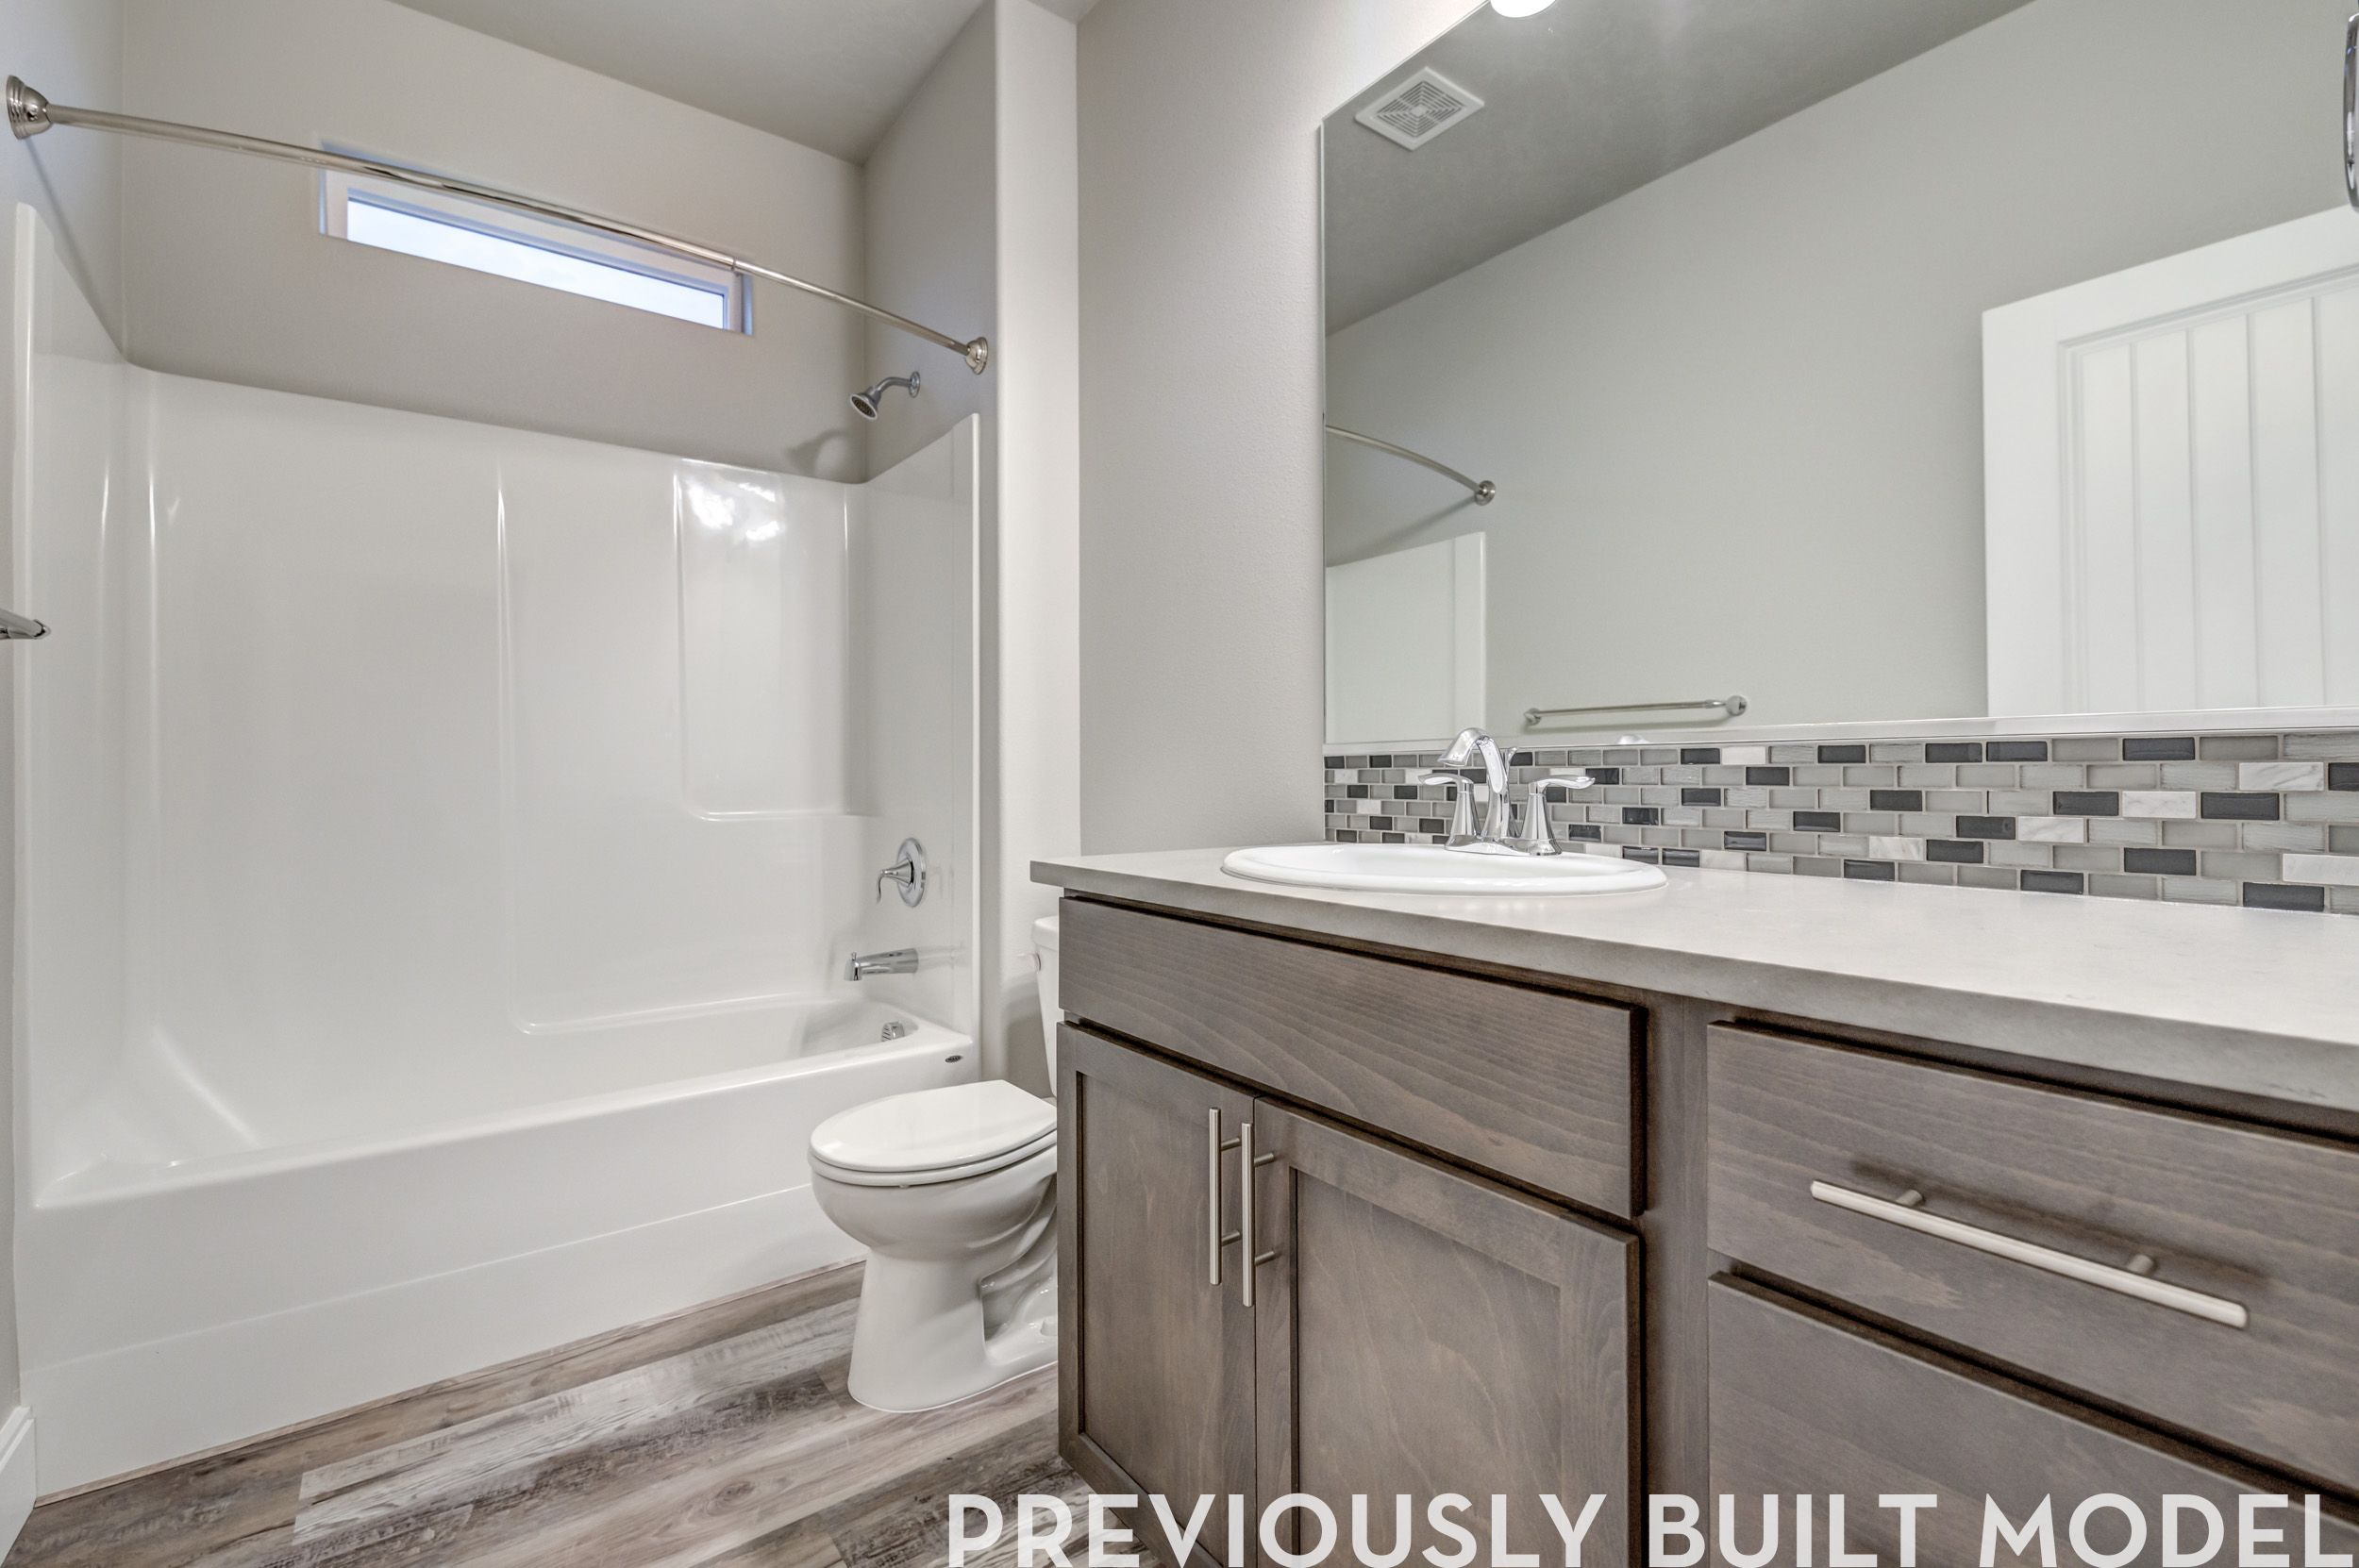 Bathroom featured in The Tully By Viking Homes in Richland, WA